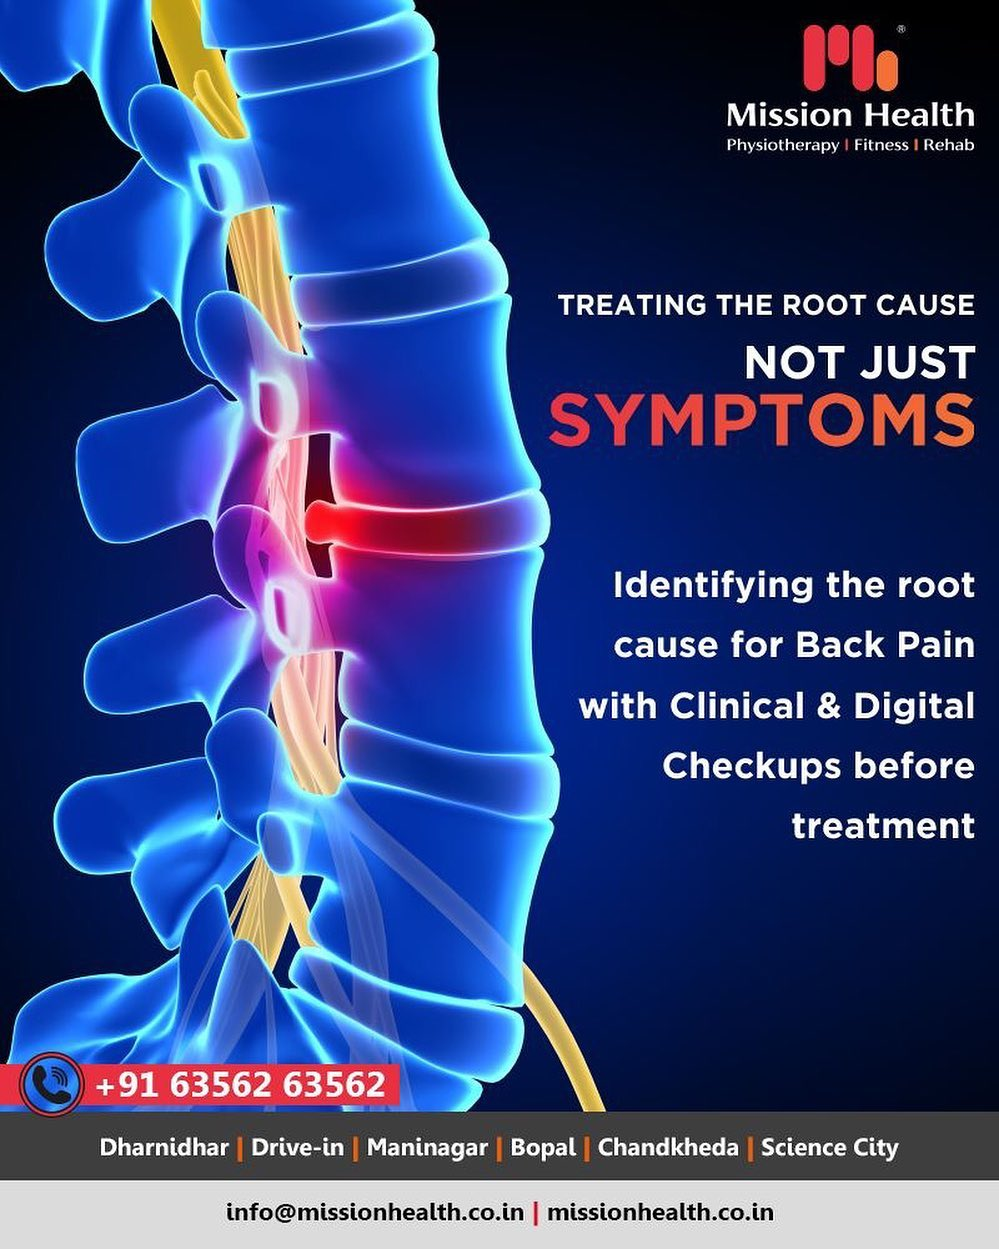 3D Spine Assessment and Clinical Checkup help us find the root cause for Back Pain. Our team of experienced doctors then plans a customized treatment for each patient at Mission Health Super Specialty Spine Clinic.  #backpain #backpainrelief #backpainreliefcenter #physiotherapists #backpainsolution #slippeddisc #slippeddisctreatmentahmedabad #slippeddisctreatmentgujarat #slippeddisctreatmentindia #slippeddisctreatasia #no1sleepdiscedtreatmentindia #superspecialityclinicsforslippeddisc #painmanagementindia #painmanagementasia #painmanagementafrica #internationaltourism #MissionHealth #MissionHealthIndia #MovementIsLife #AbilityClinic